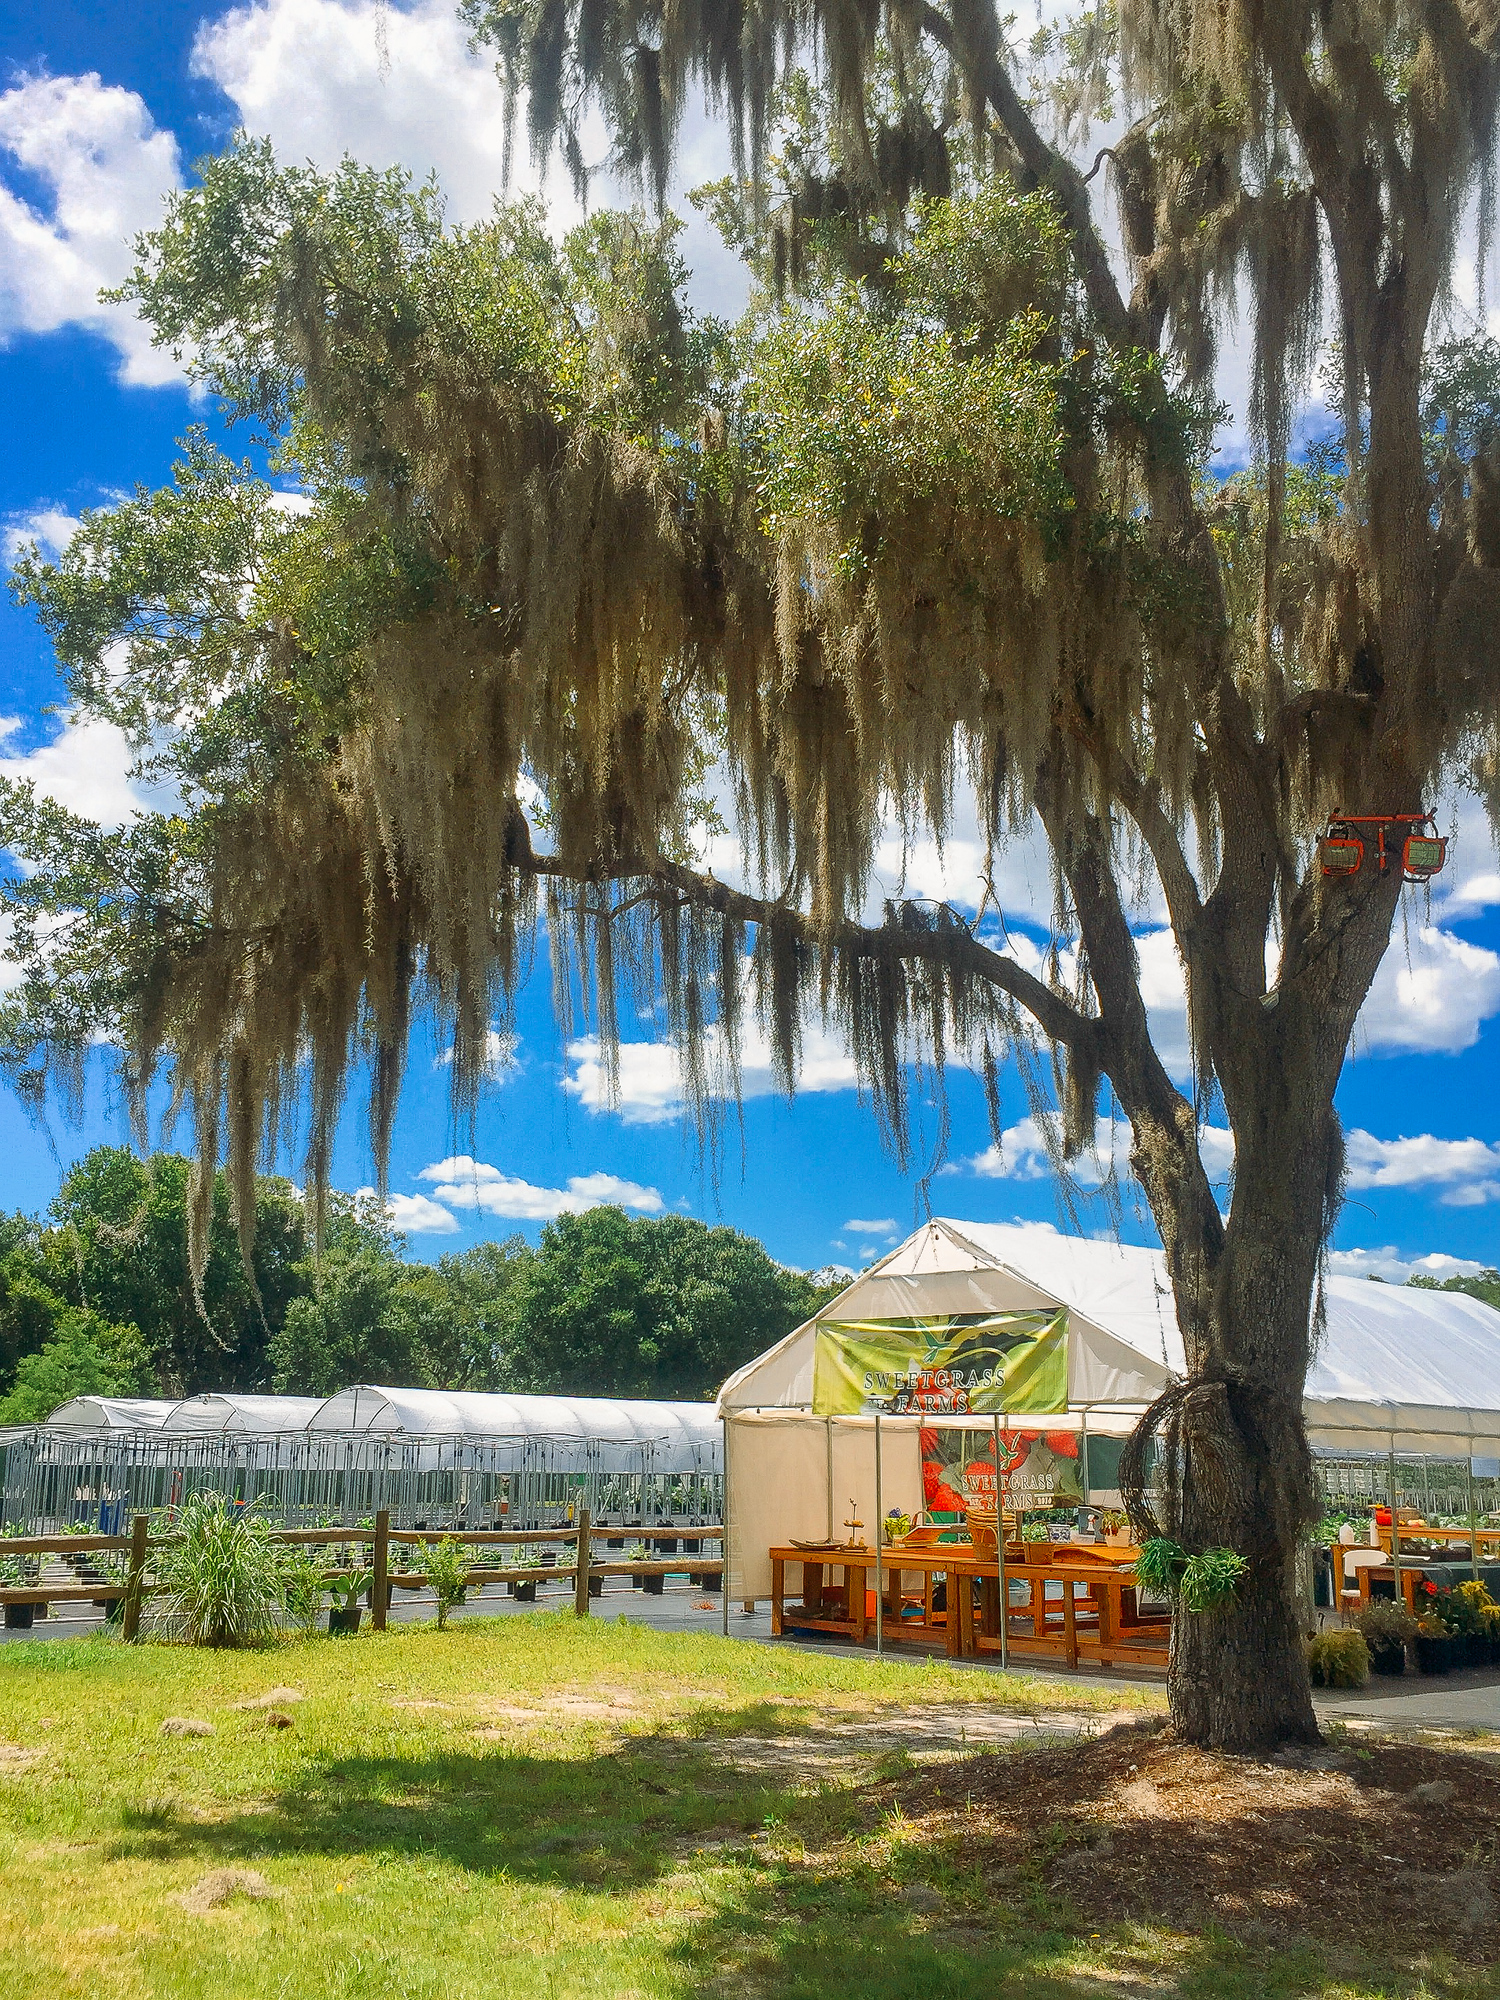 Sweetgrass Farms in Sarasota is an aquaponic farm and one of the best things to see in Sarasota.